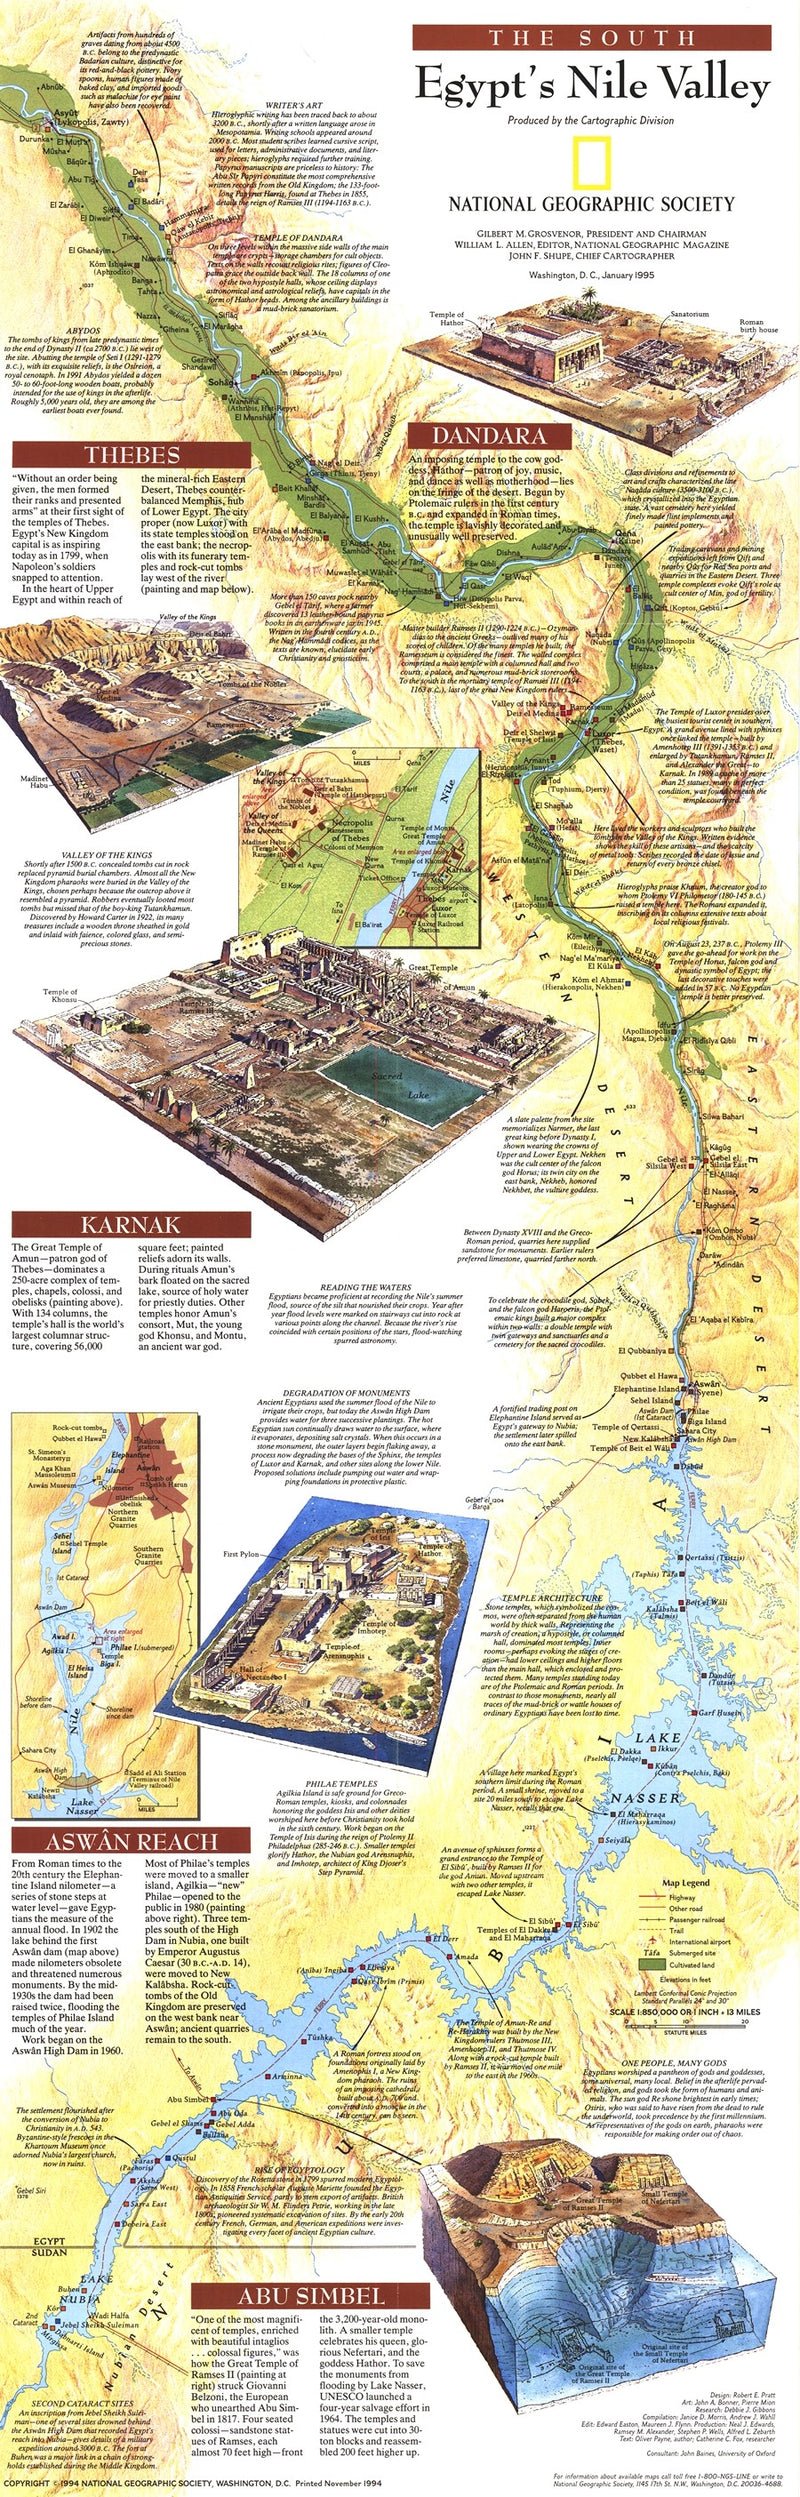 Egypts Nile Valley South Map 1995